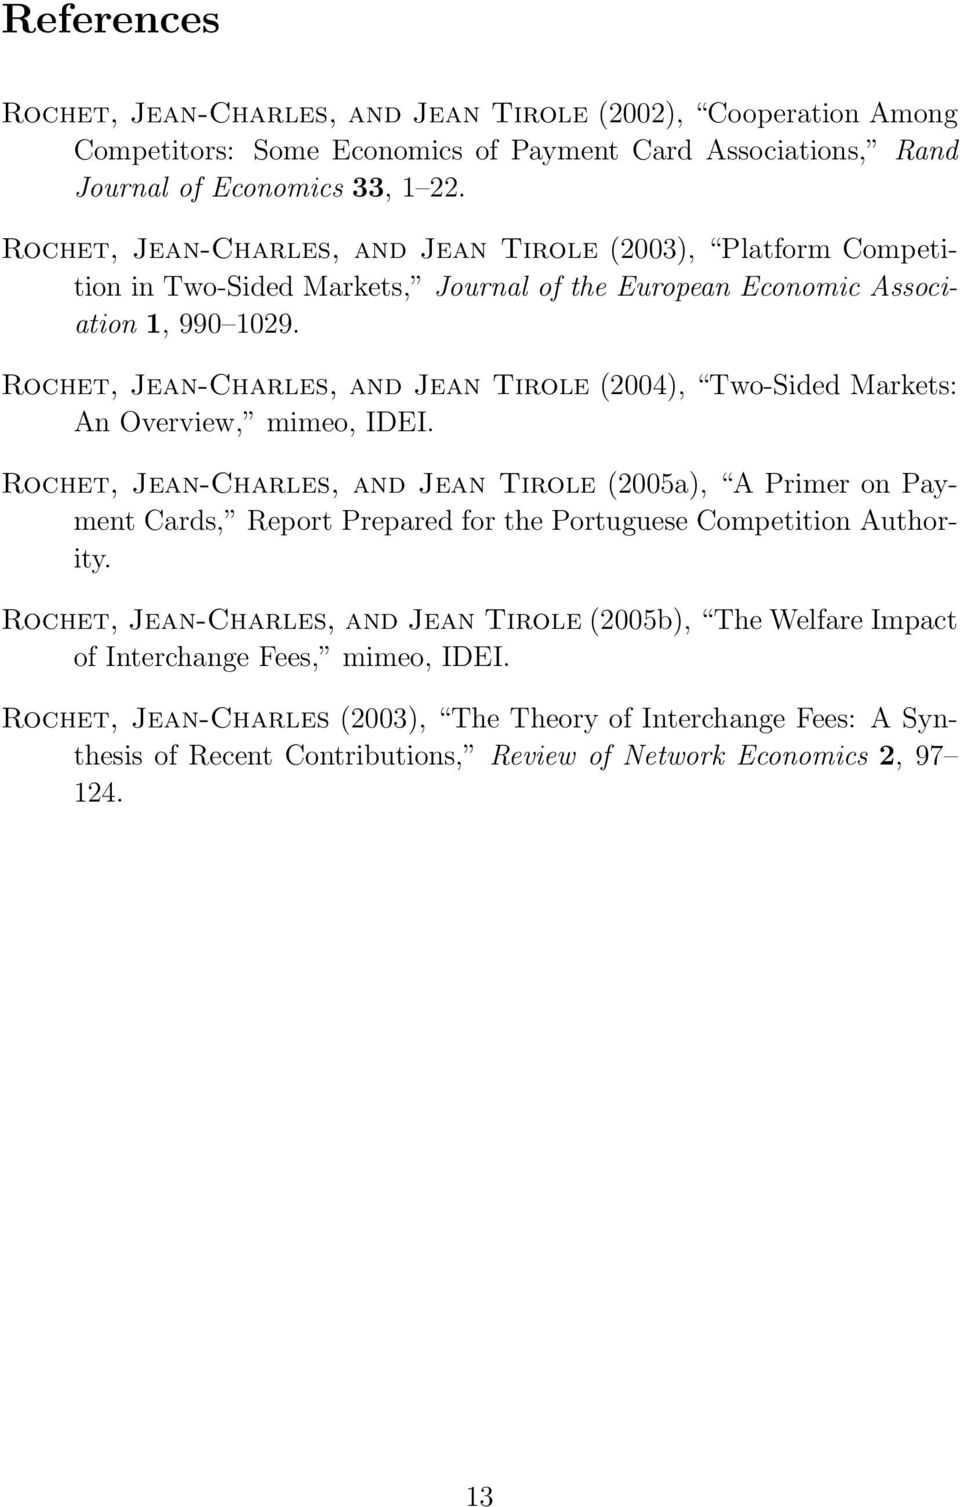 Rochet, Jean-Charles, and Jean Tirole (2004), Two-Sided Markets: An Overview, mimeo, IDEI.